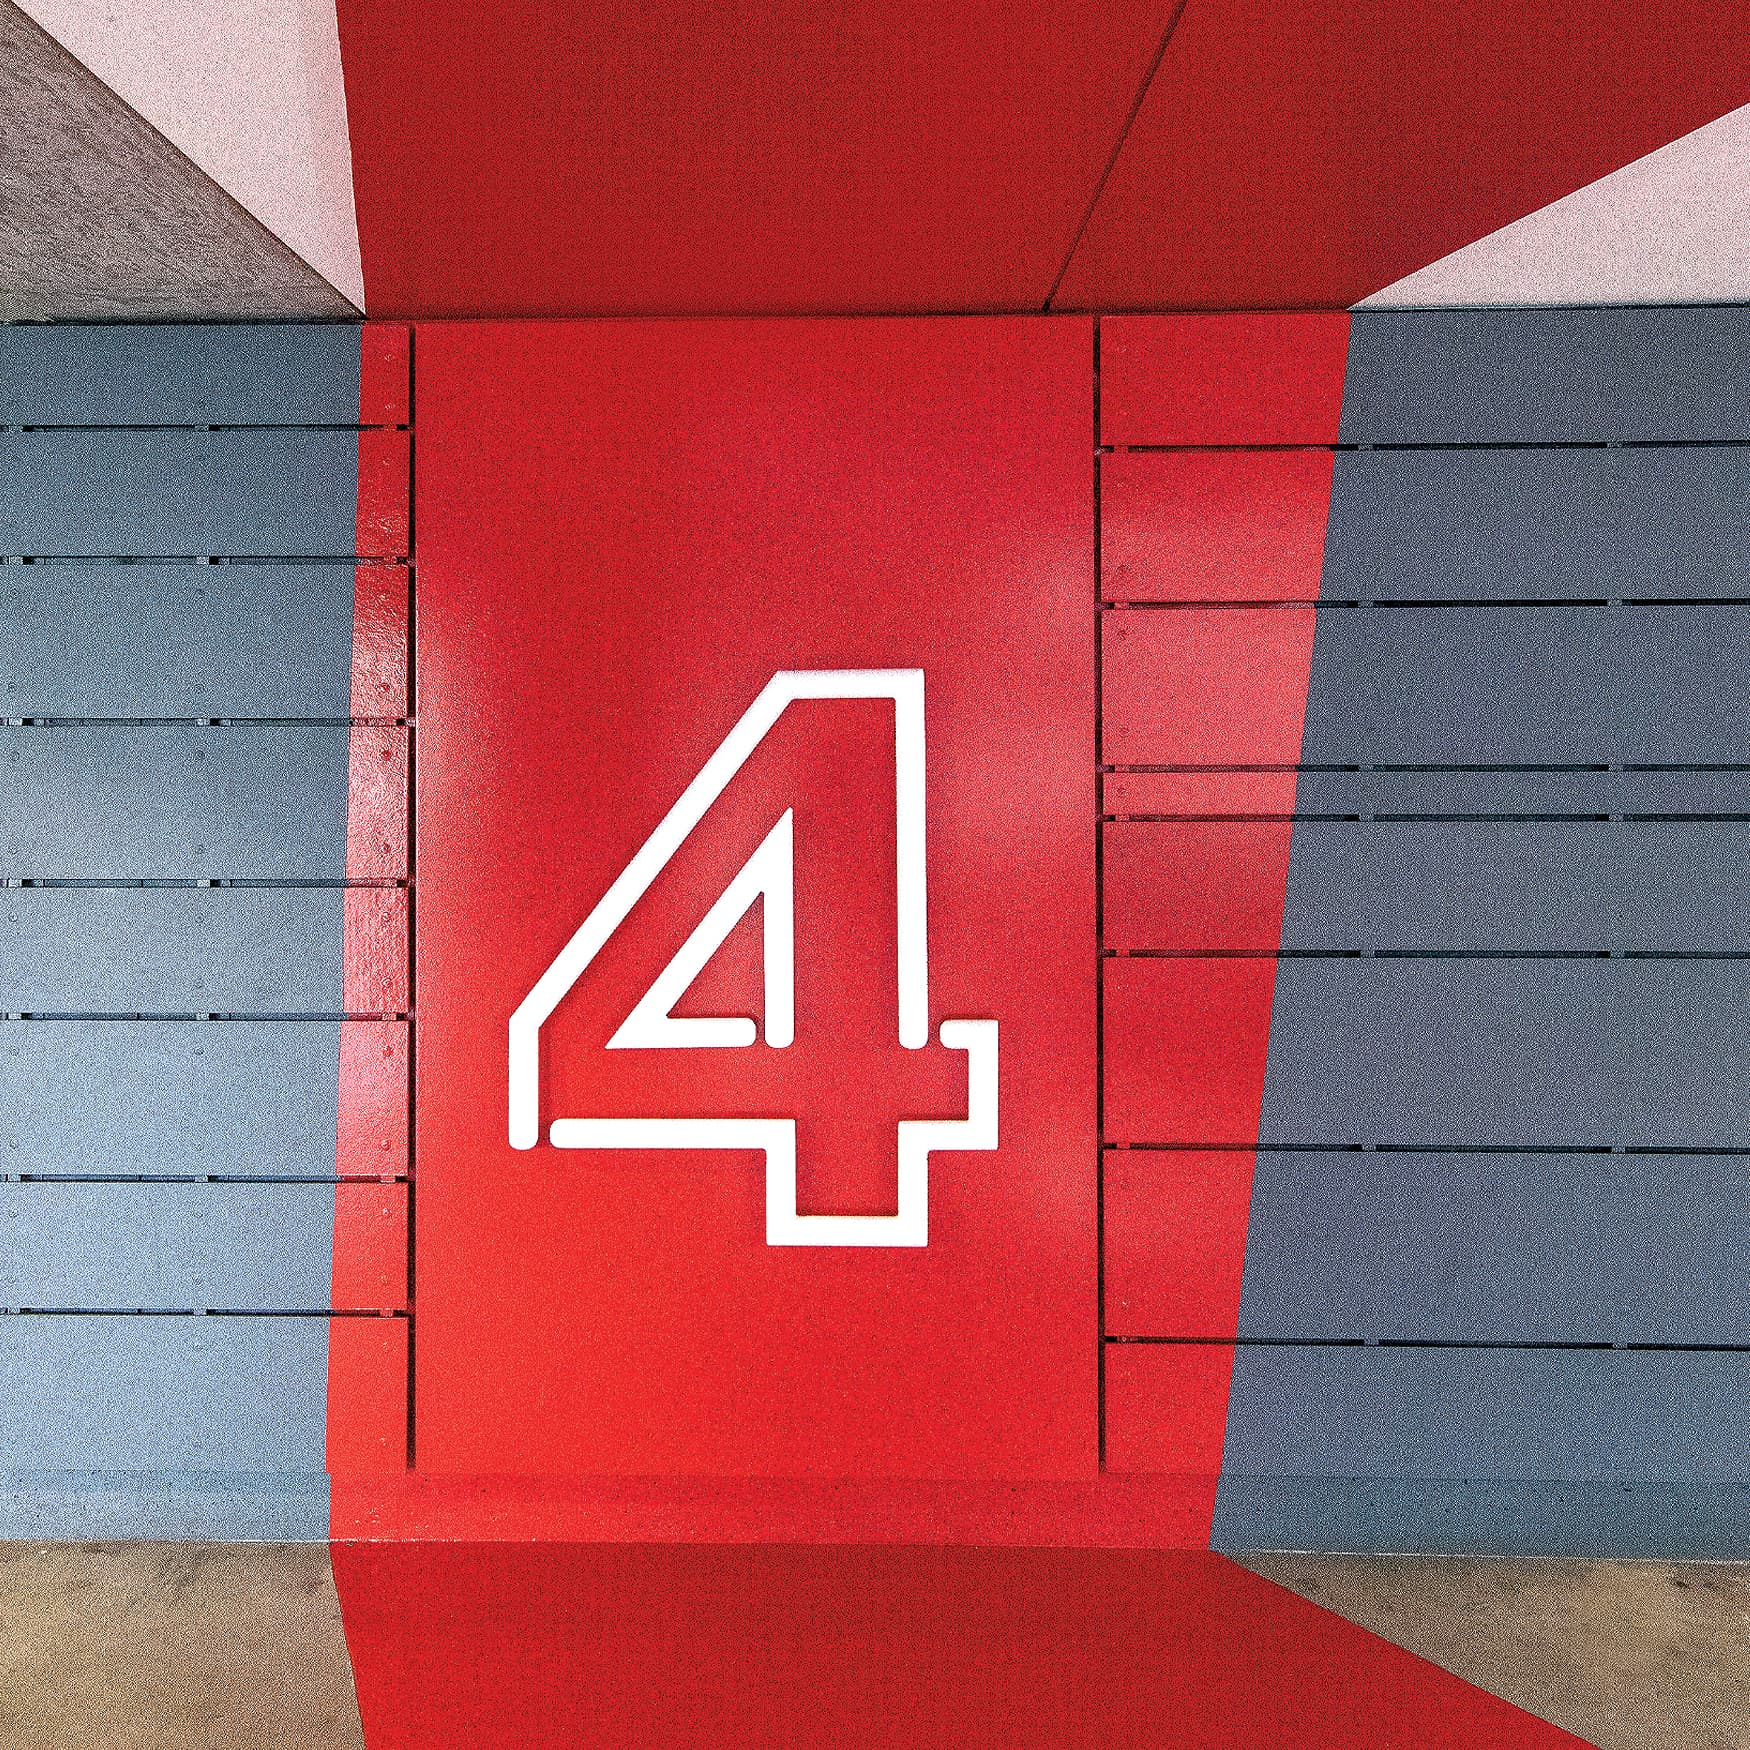 Red painted graphic in a parking garage with the floor number 4.